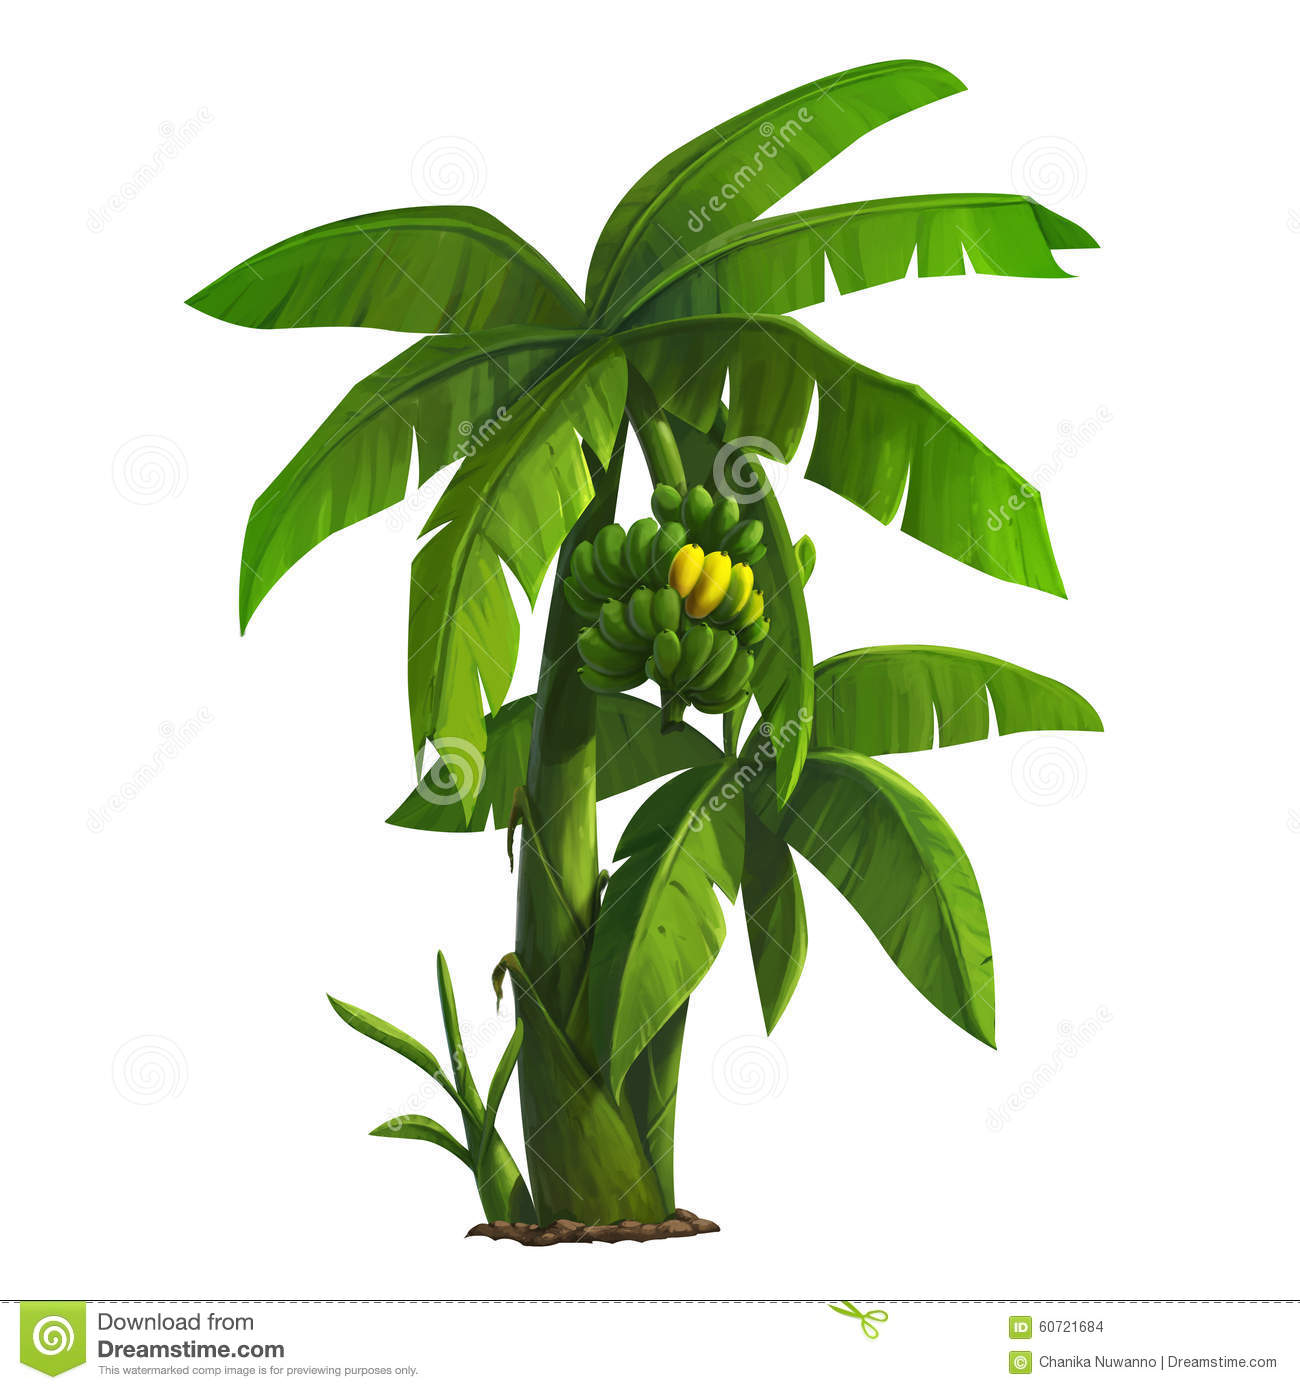 Banana tree stock illustration. Illustration of tropical ...